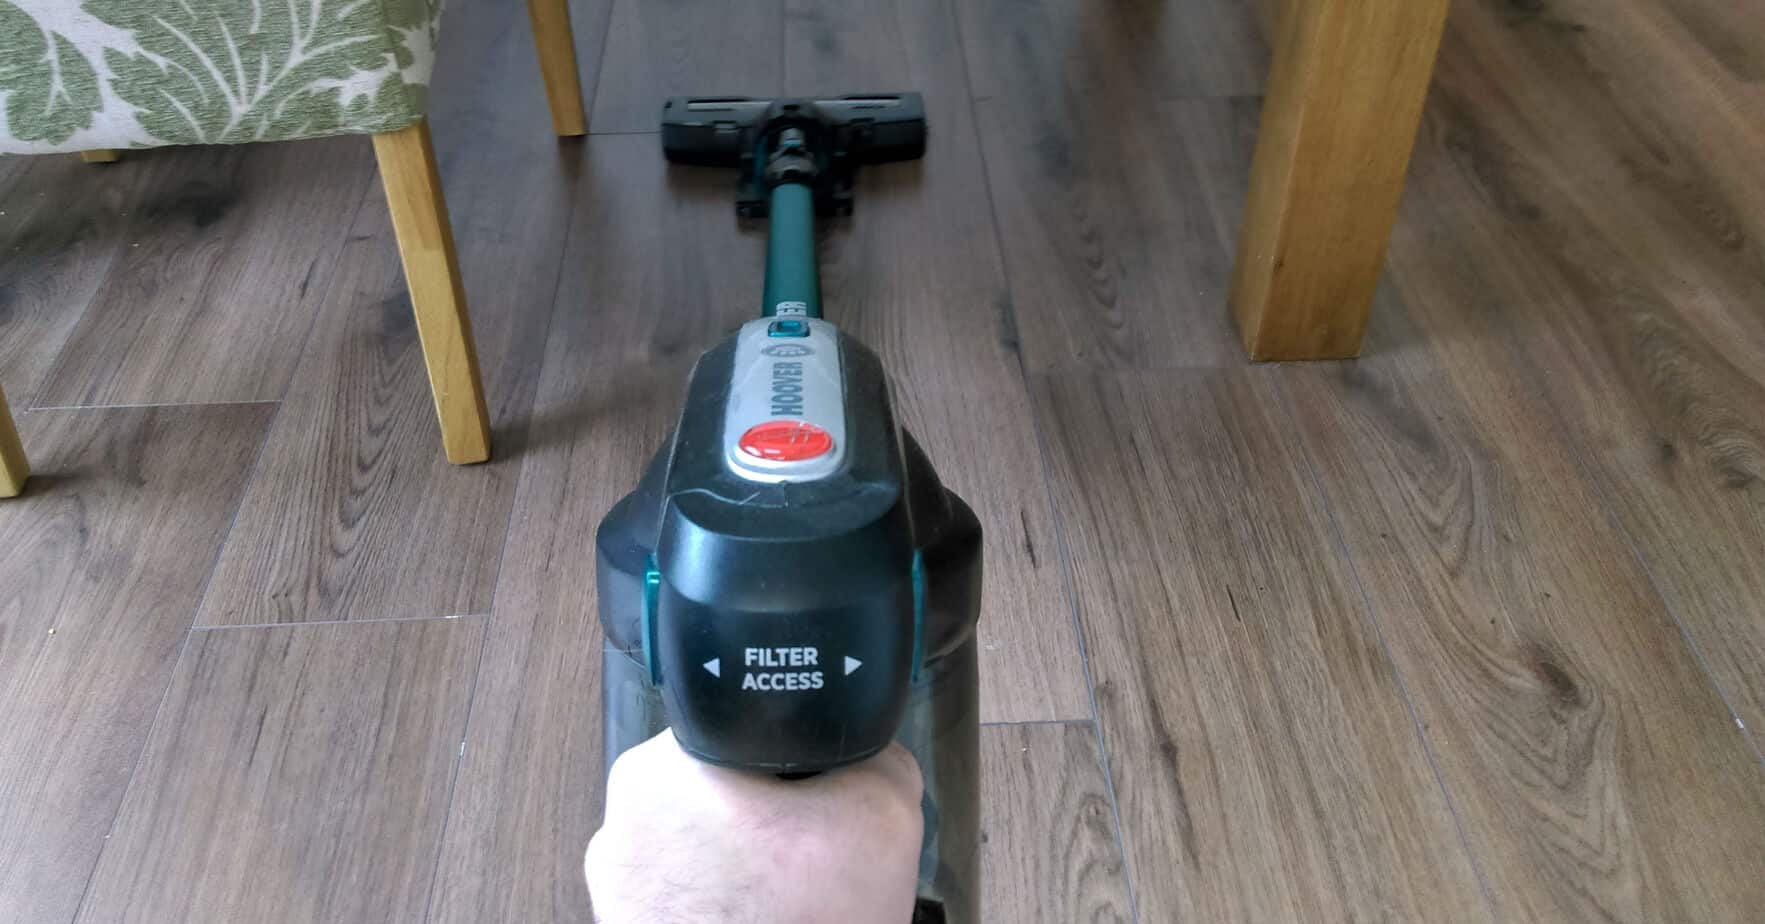 We recently had the change to test one of Hoovers latest offering in the cordless stick vacuum market. Read our Hoover HF18CPT Cordless Stick Vacuum Review now after 4 weeks of testing.